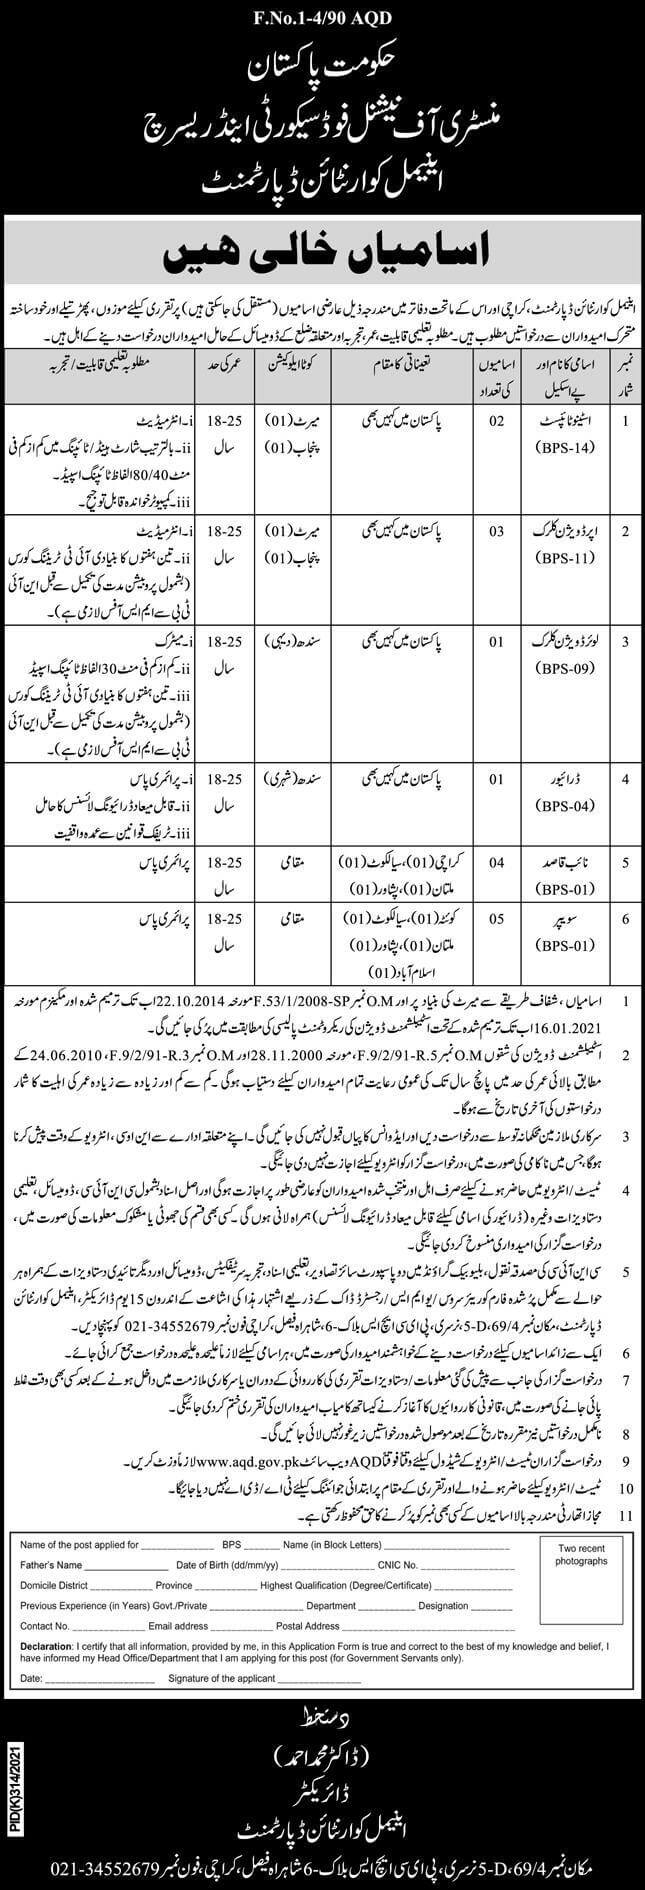 Ministry of National Food Security and Research MNFSR Jobs 2021 Advertisement